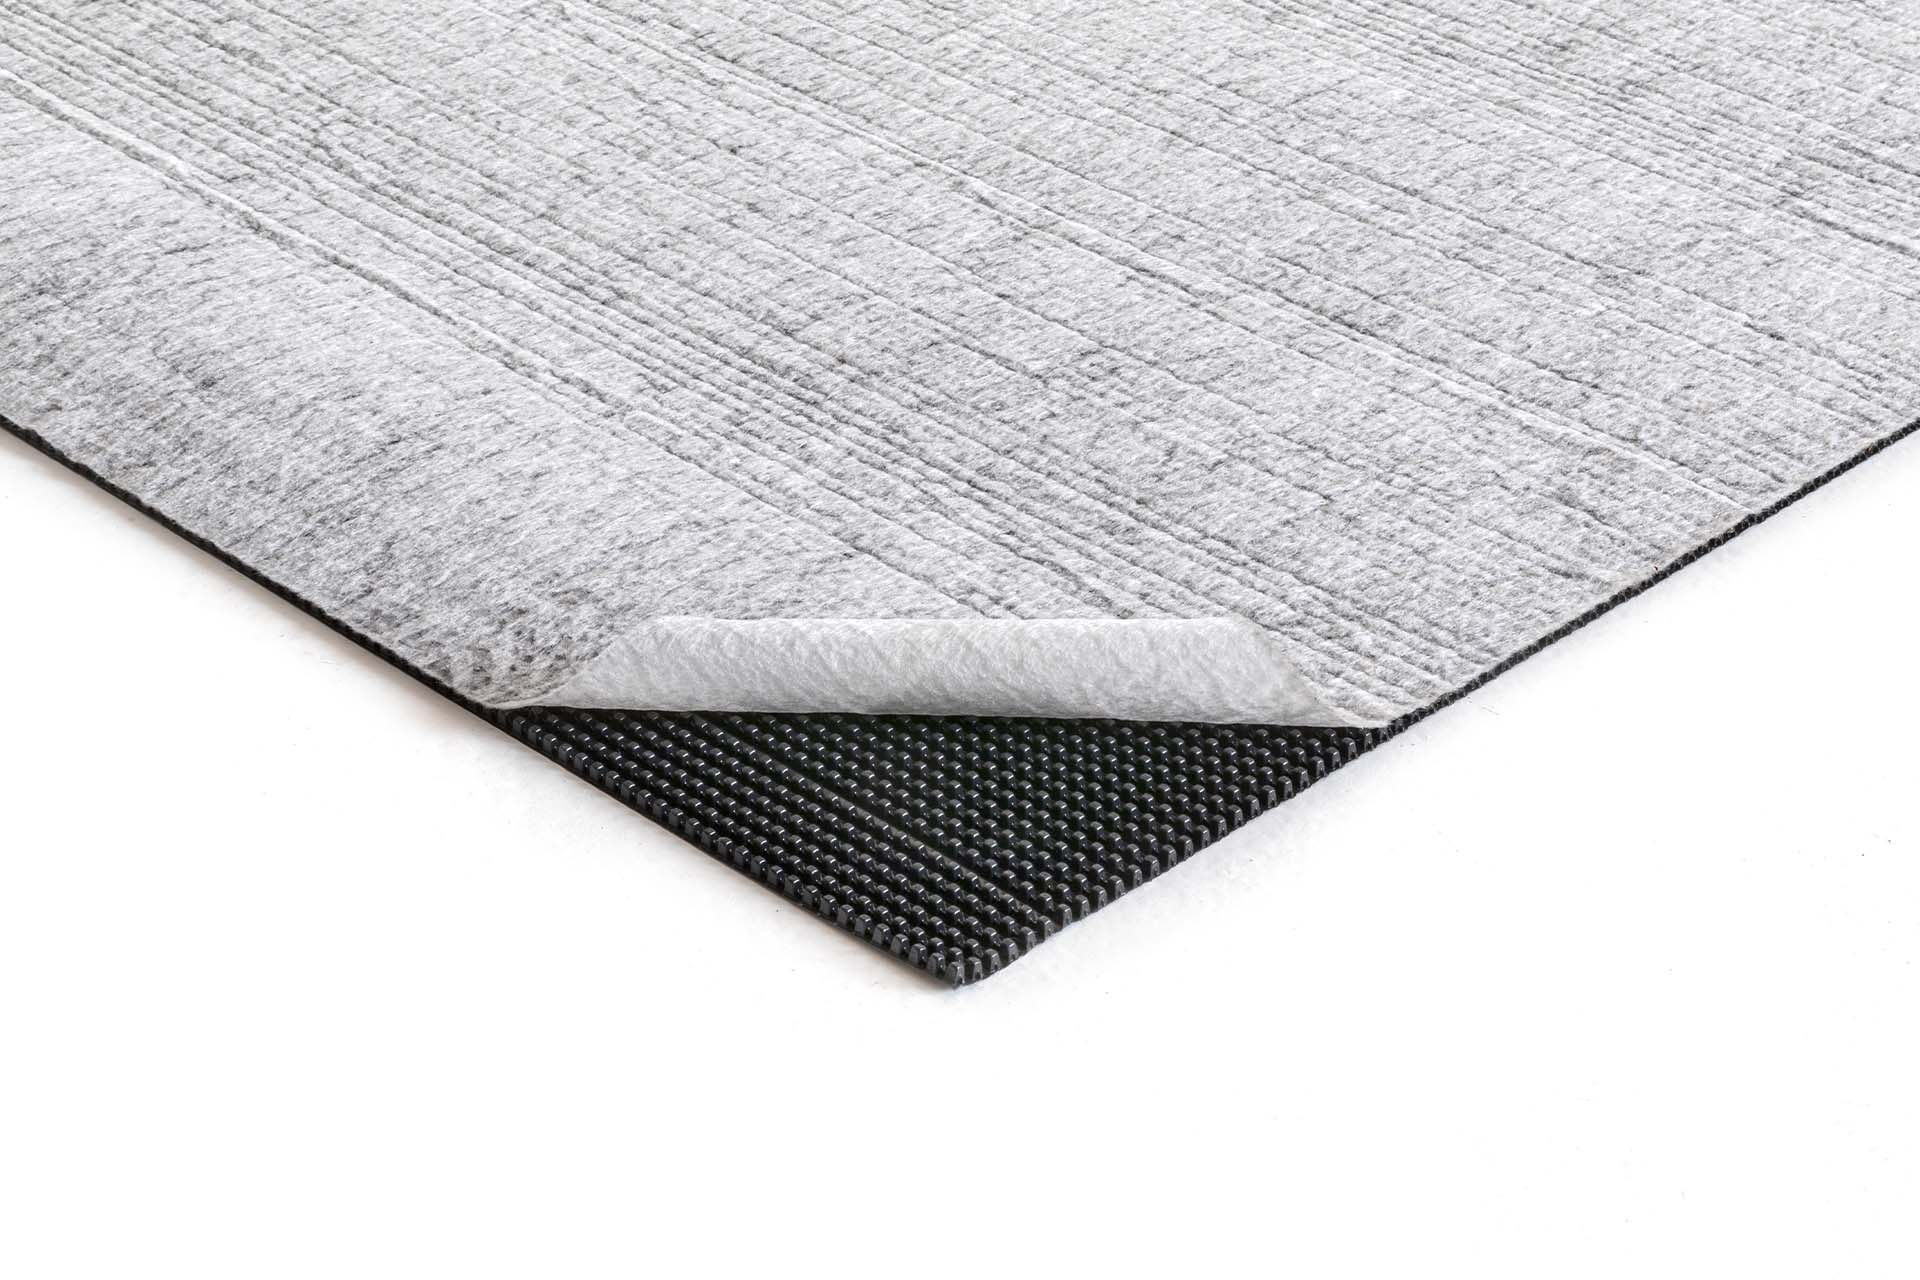 High flow cuspated HDPE drainage core bonded to a non woven geotextile